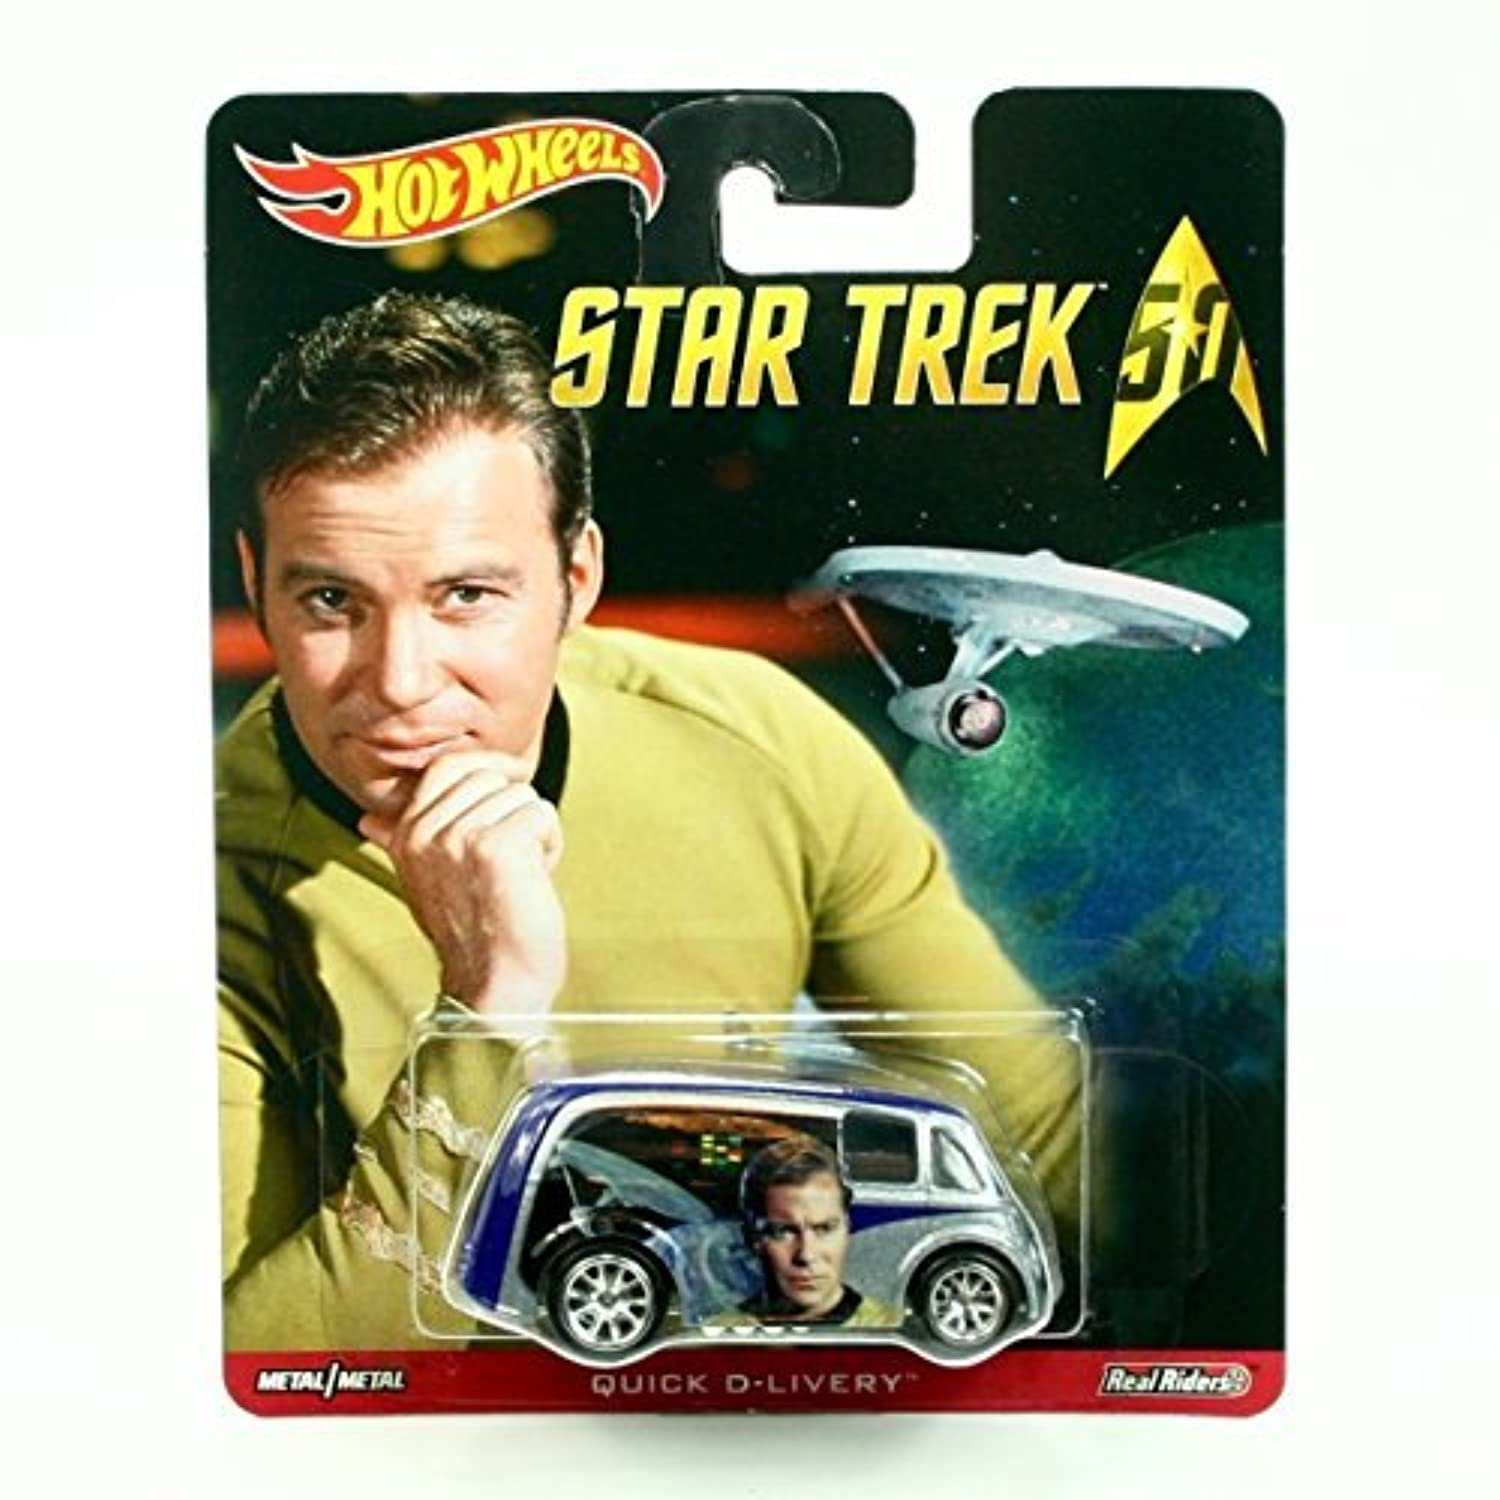 QUICK D-LIVERY * Star Trek / Captain James T. Kirk * Hot Wheels 2015 Pop Culture Star Trek 50th Anniversary Series Die-Cast Vehicle [並行輸入品]